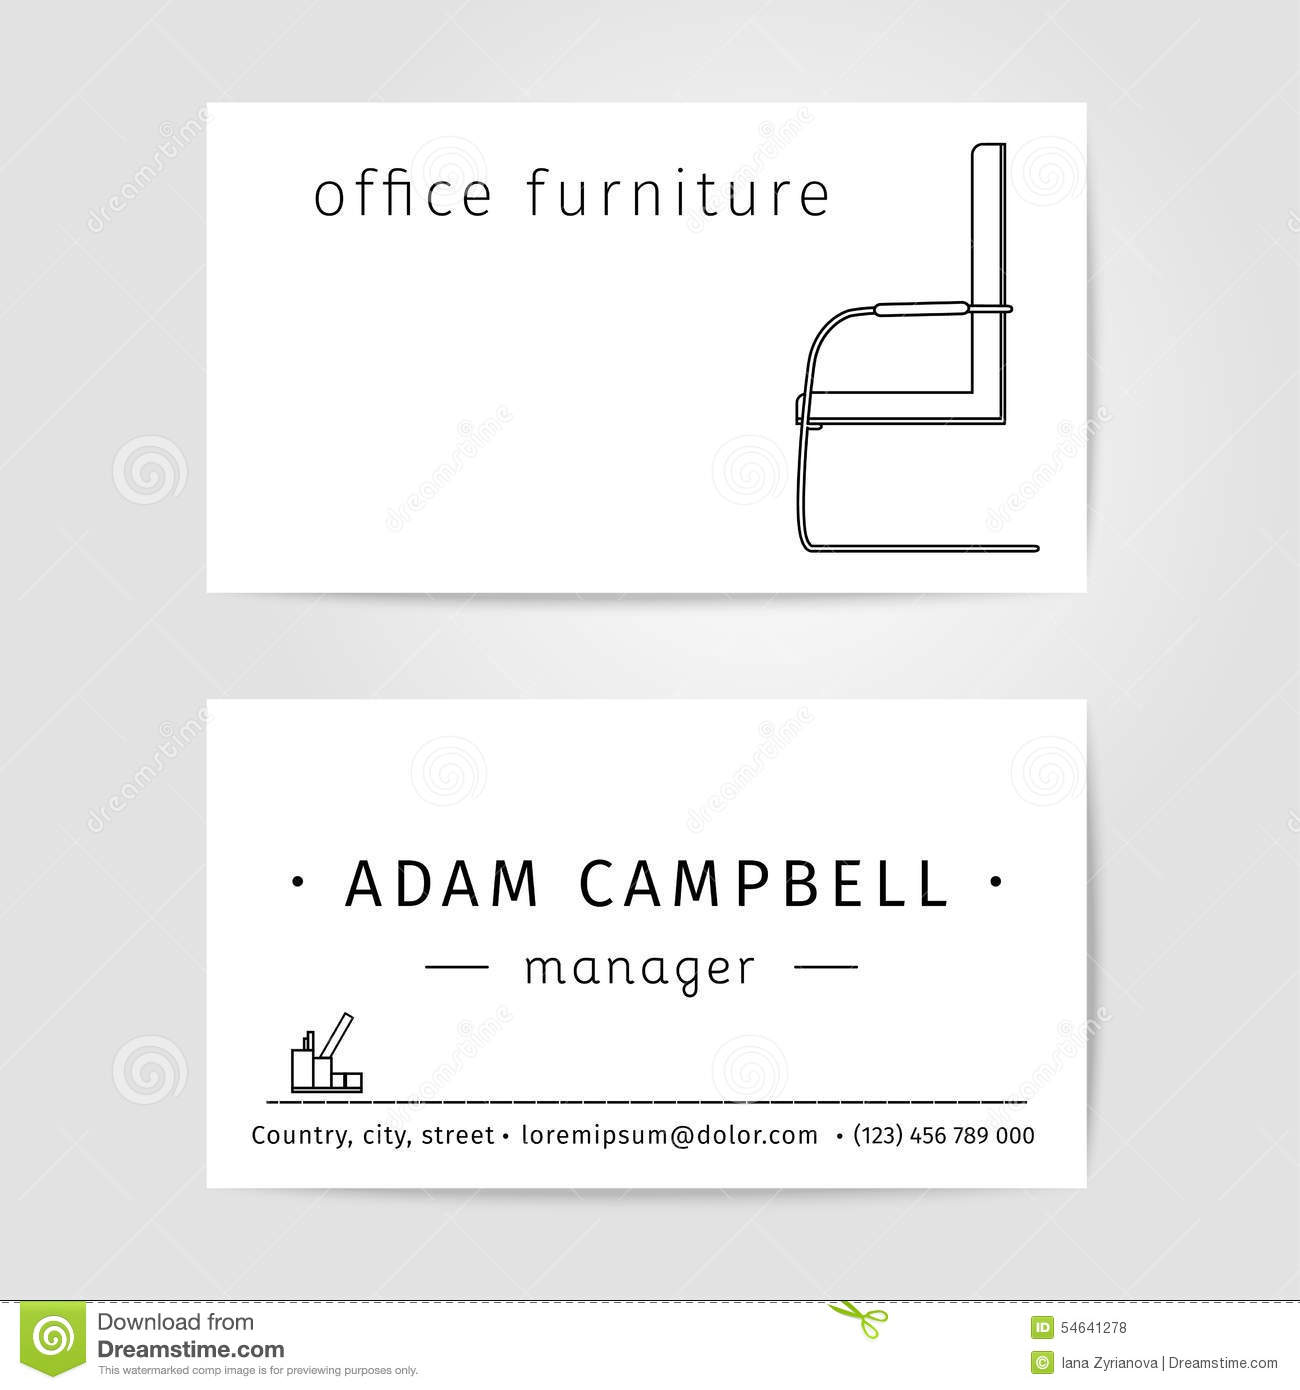 interior and office furniture designer or manager